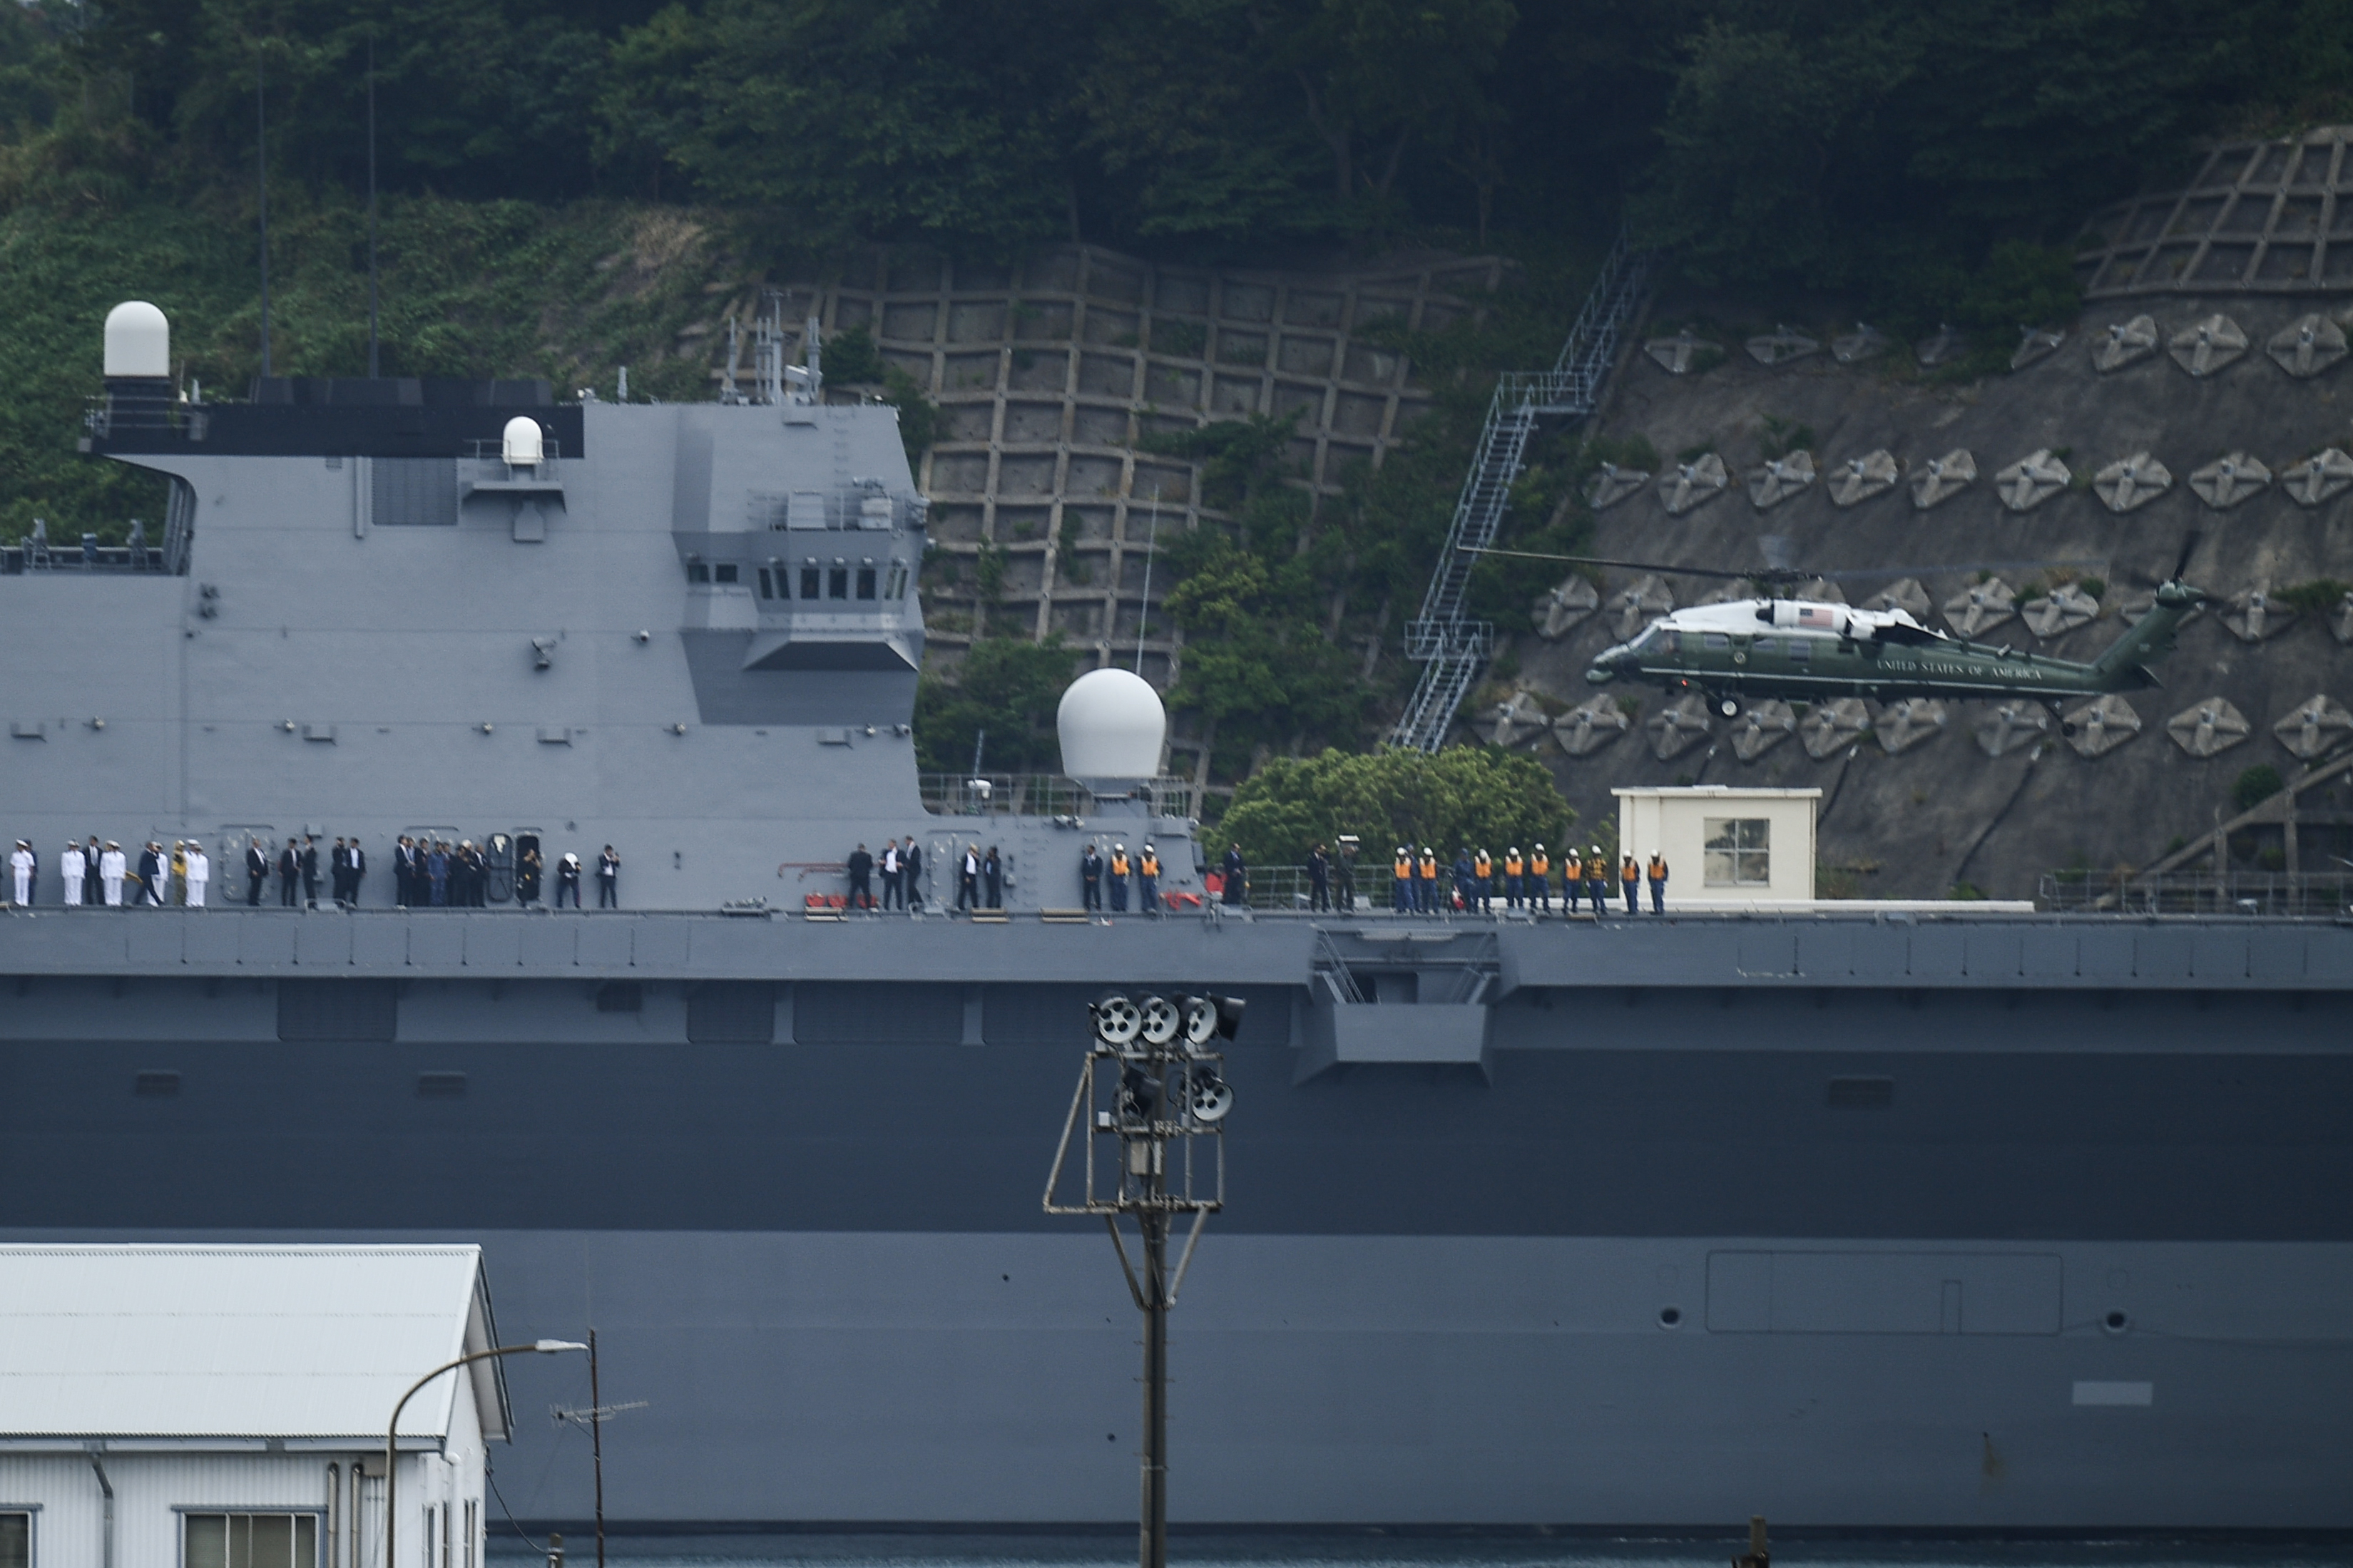 Marine One with US President Donald Trump and First Lady Melania Trump on board lands on Japan Maritime Self-Defense Force helicopter carrier JS Kaga in Yokosuka on May 28, 2019.